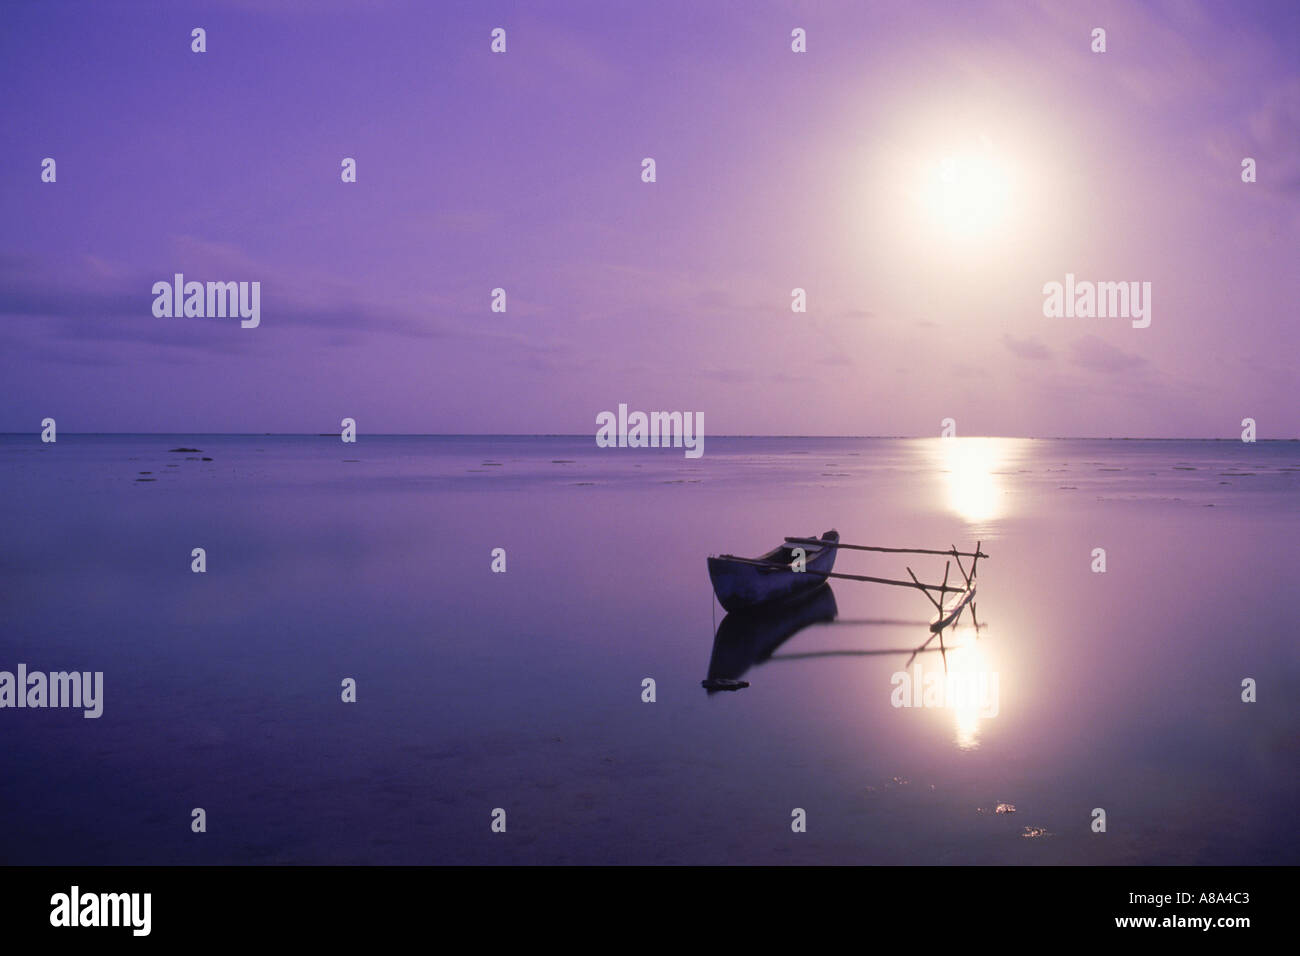 Outrigger in calm lagoon off Aitutaki Island under full moon in South Pacific - Stock Image